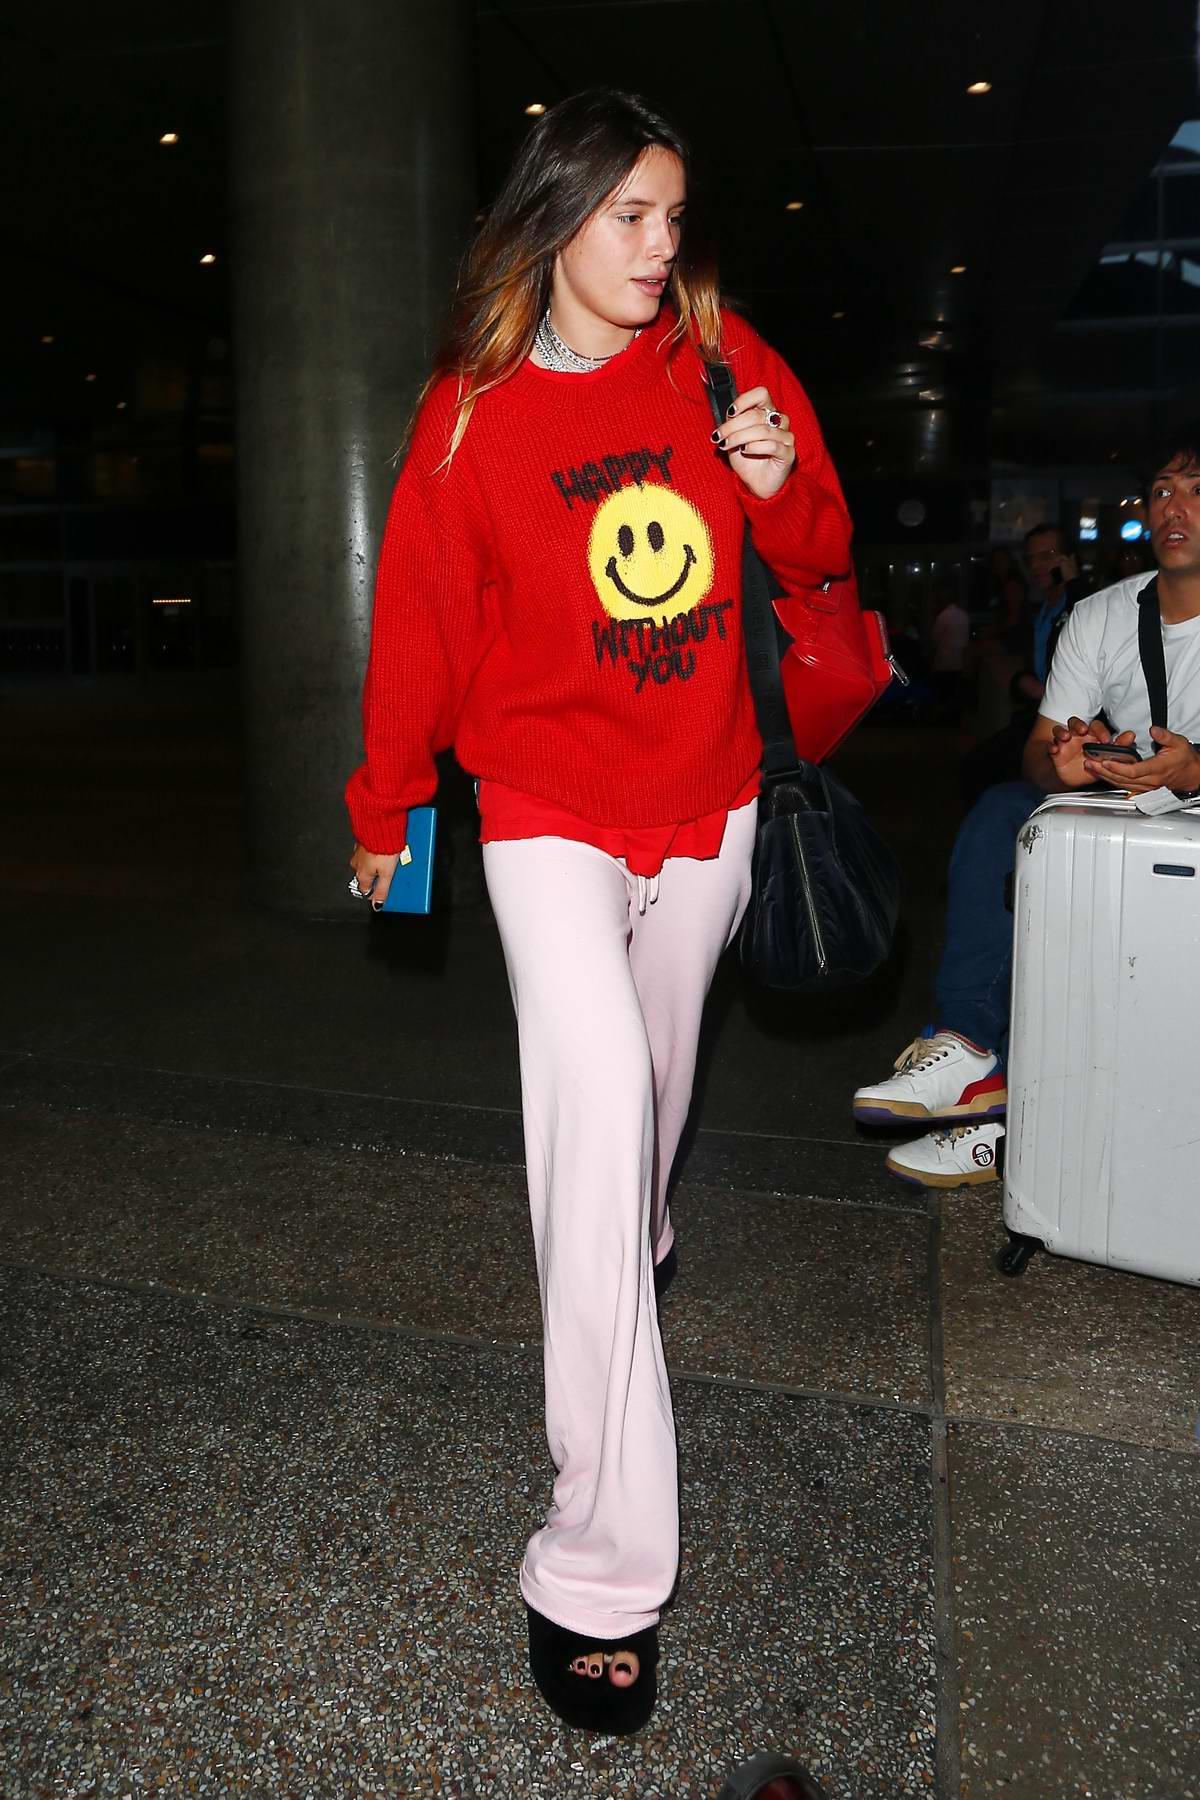 Bella Thorne seen wearing a red sweater as she arrives make-up free at LAX in Los Angeles